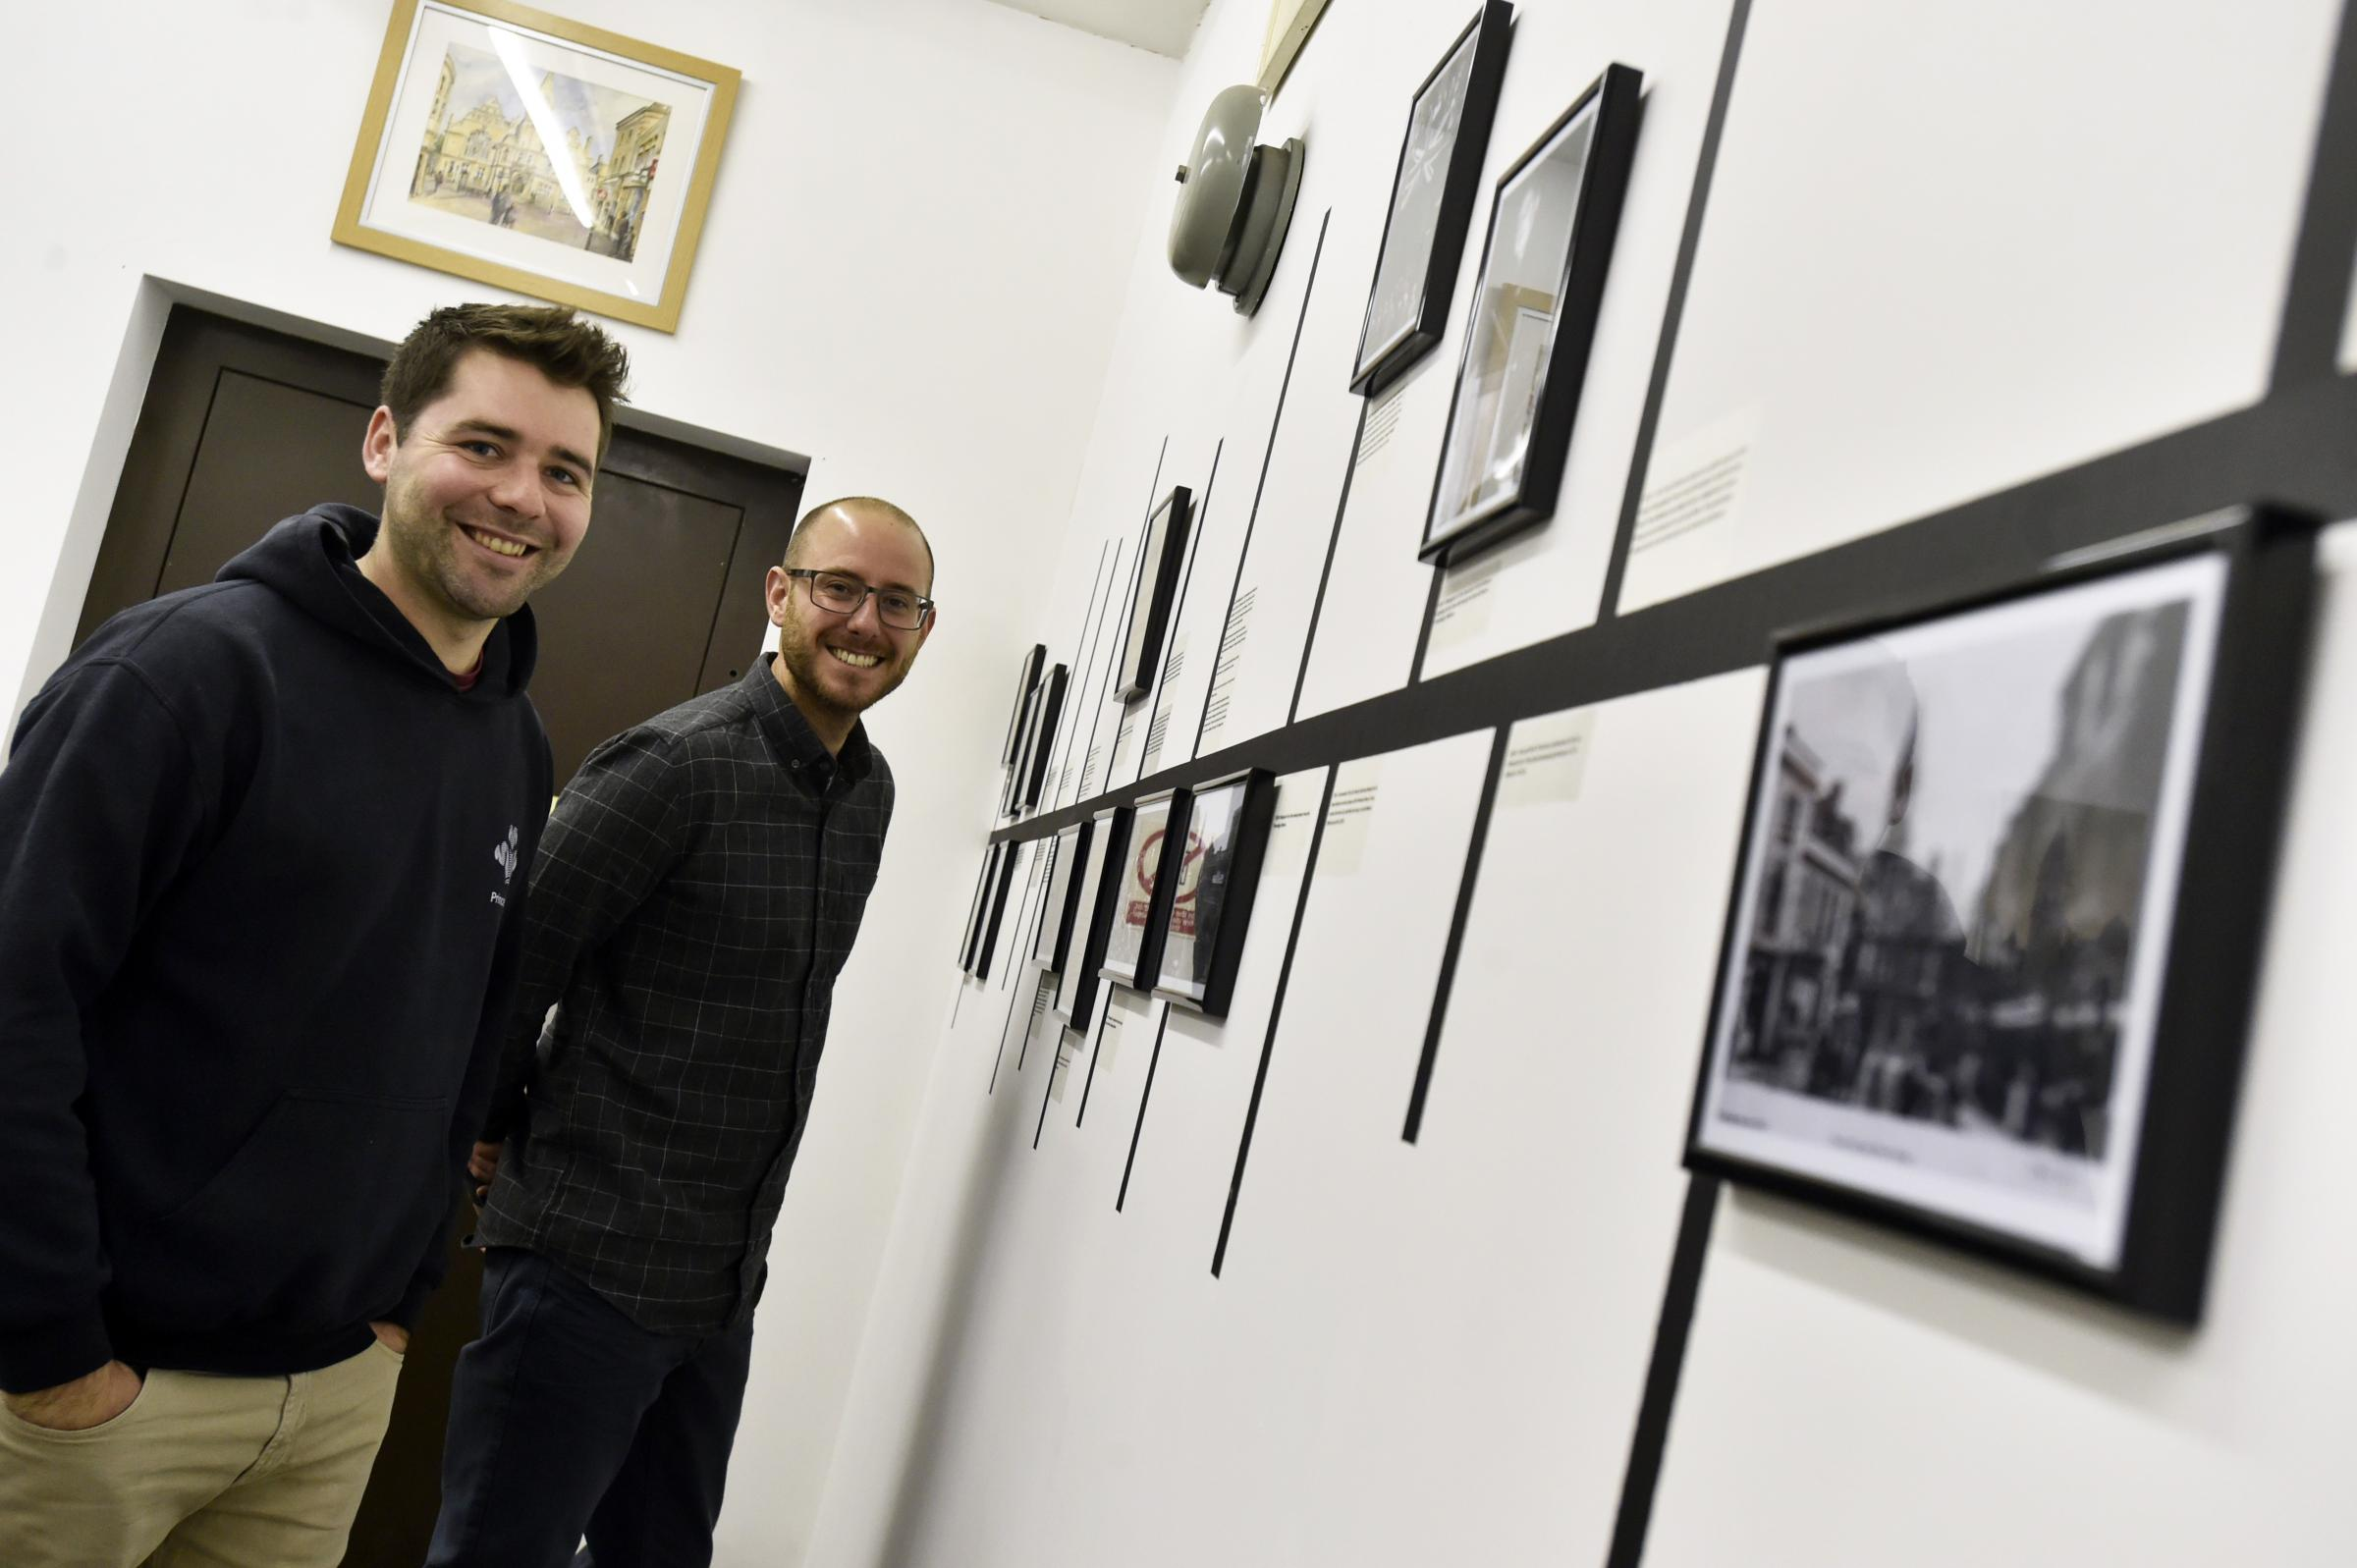 L-R Joe Coles and Craig Enderby Team Leaders for the Princes Trust. Young people from Princes trust have been renovating Trowbridge Town Hall, they have put up a timeline of the hall's history Photo: Diane Vose DV5899/2  Nov 2017